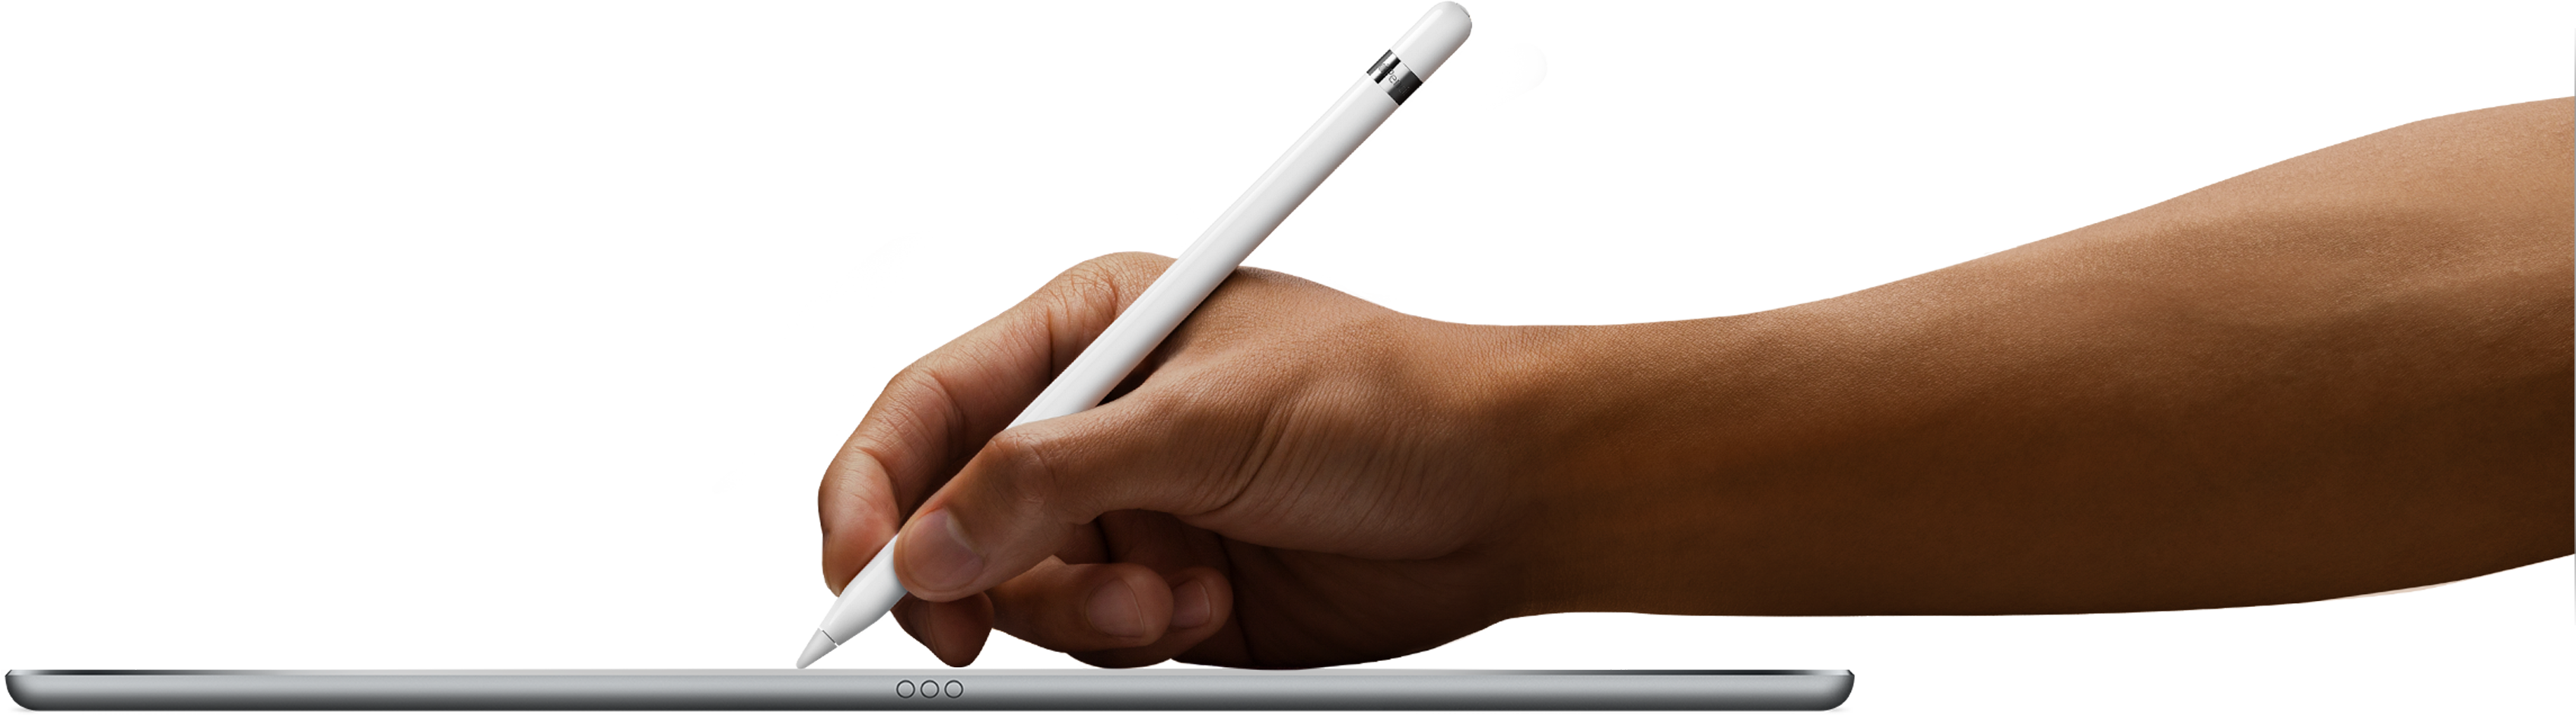 Apple to enhance Apple Pencil with Ultrasonic Technology